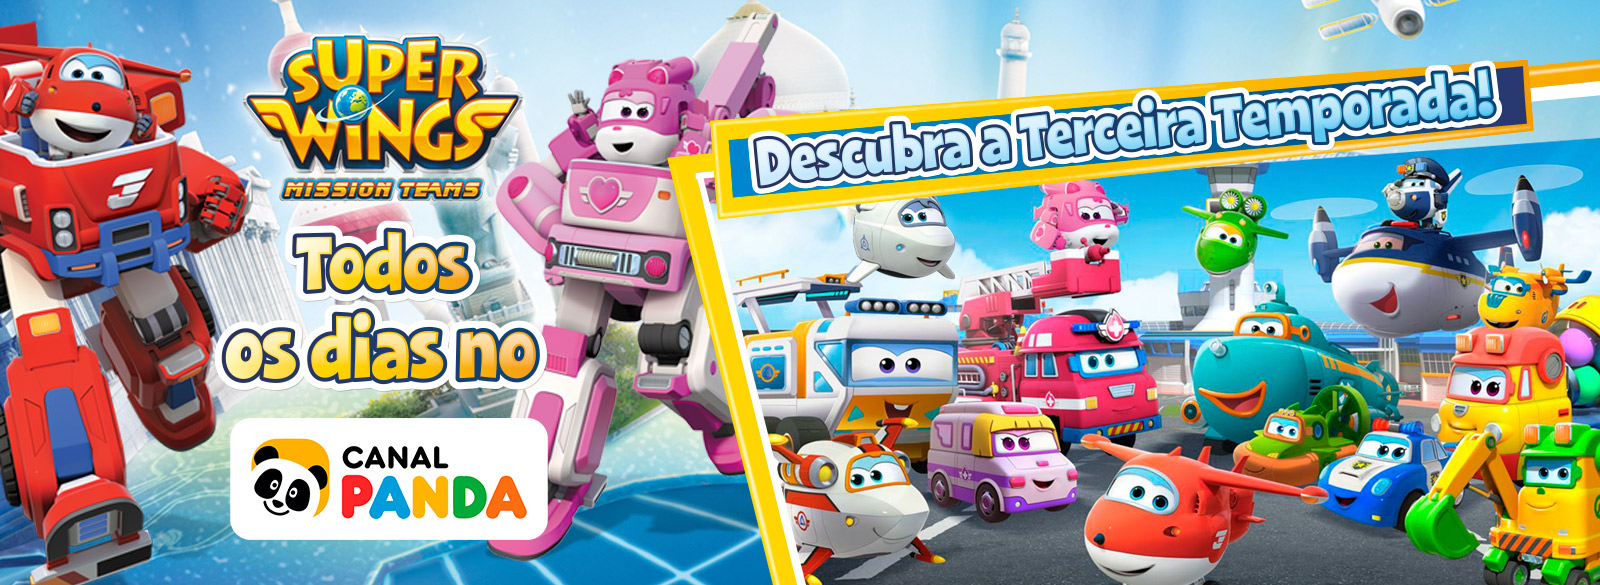 Super Wings Temporada 3